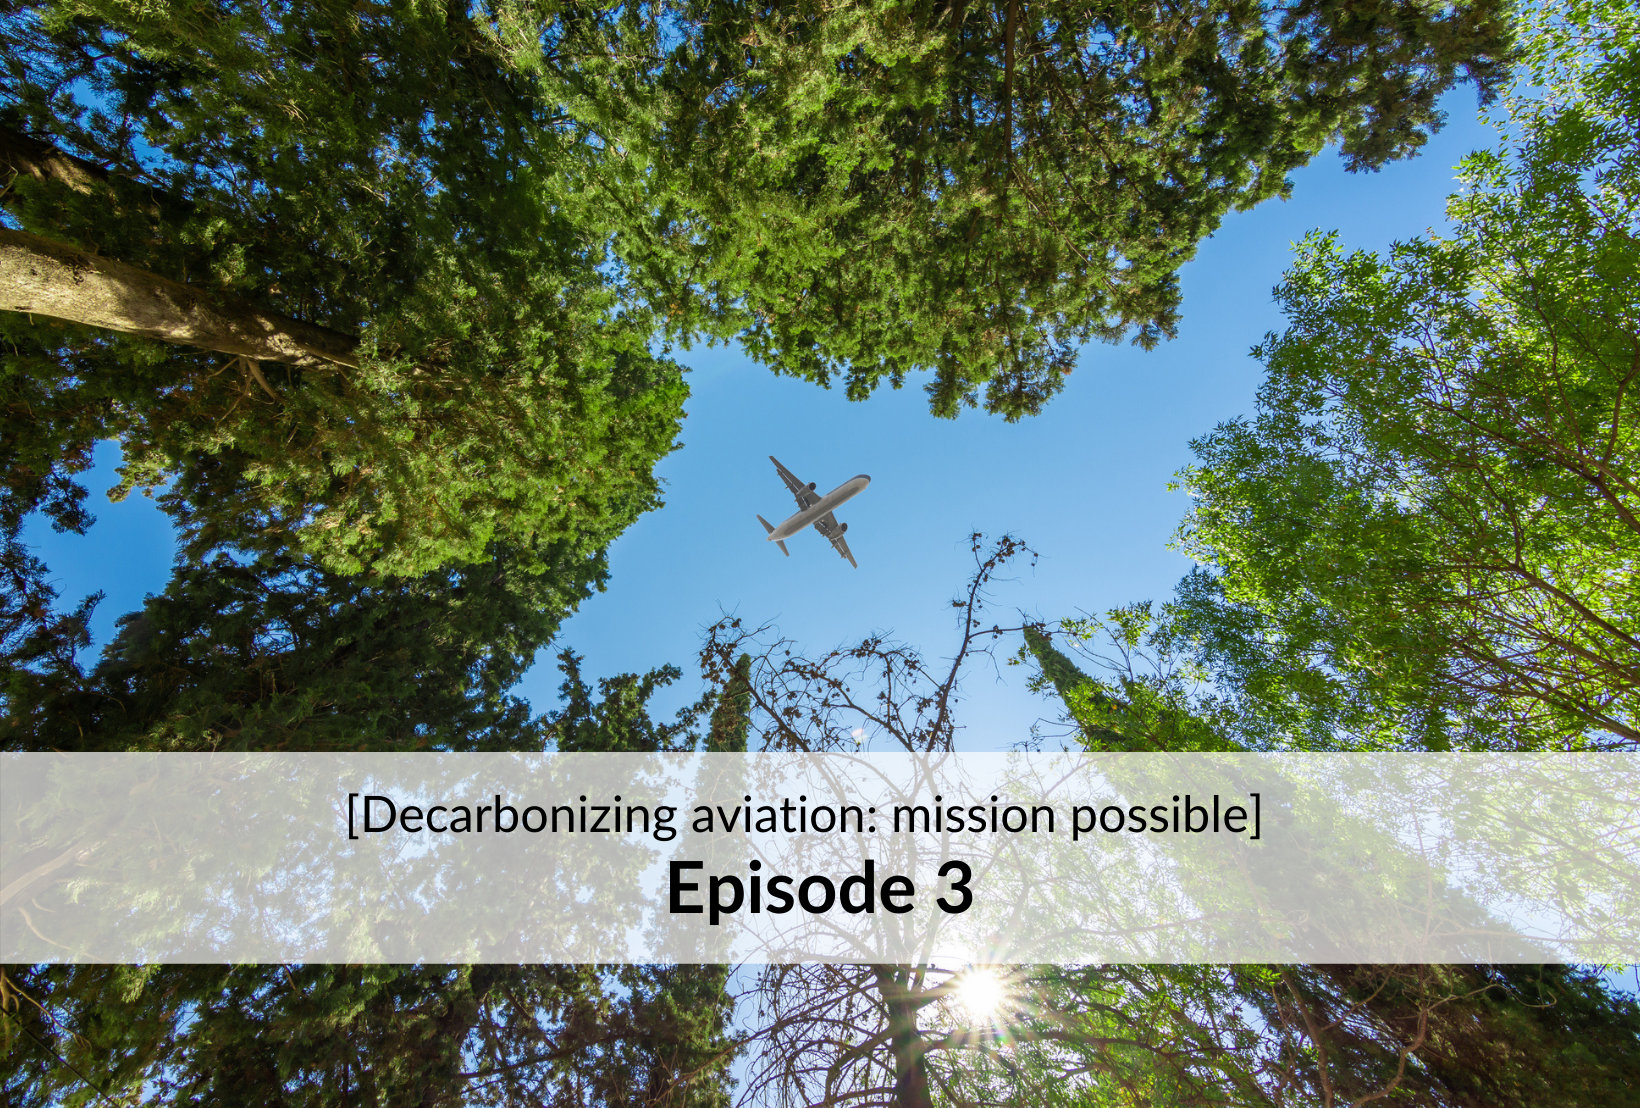 [Decarbonizing aviation: mission possible] - Episode 3: Aviation track record and roadmap